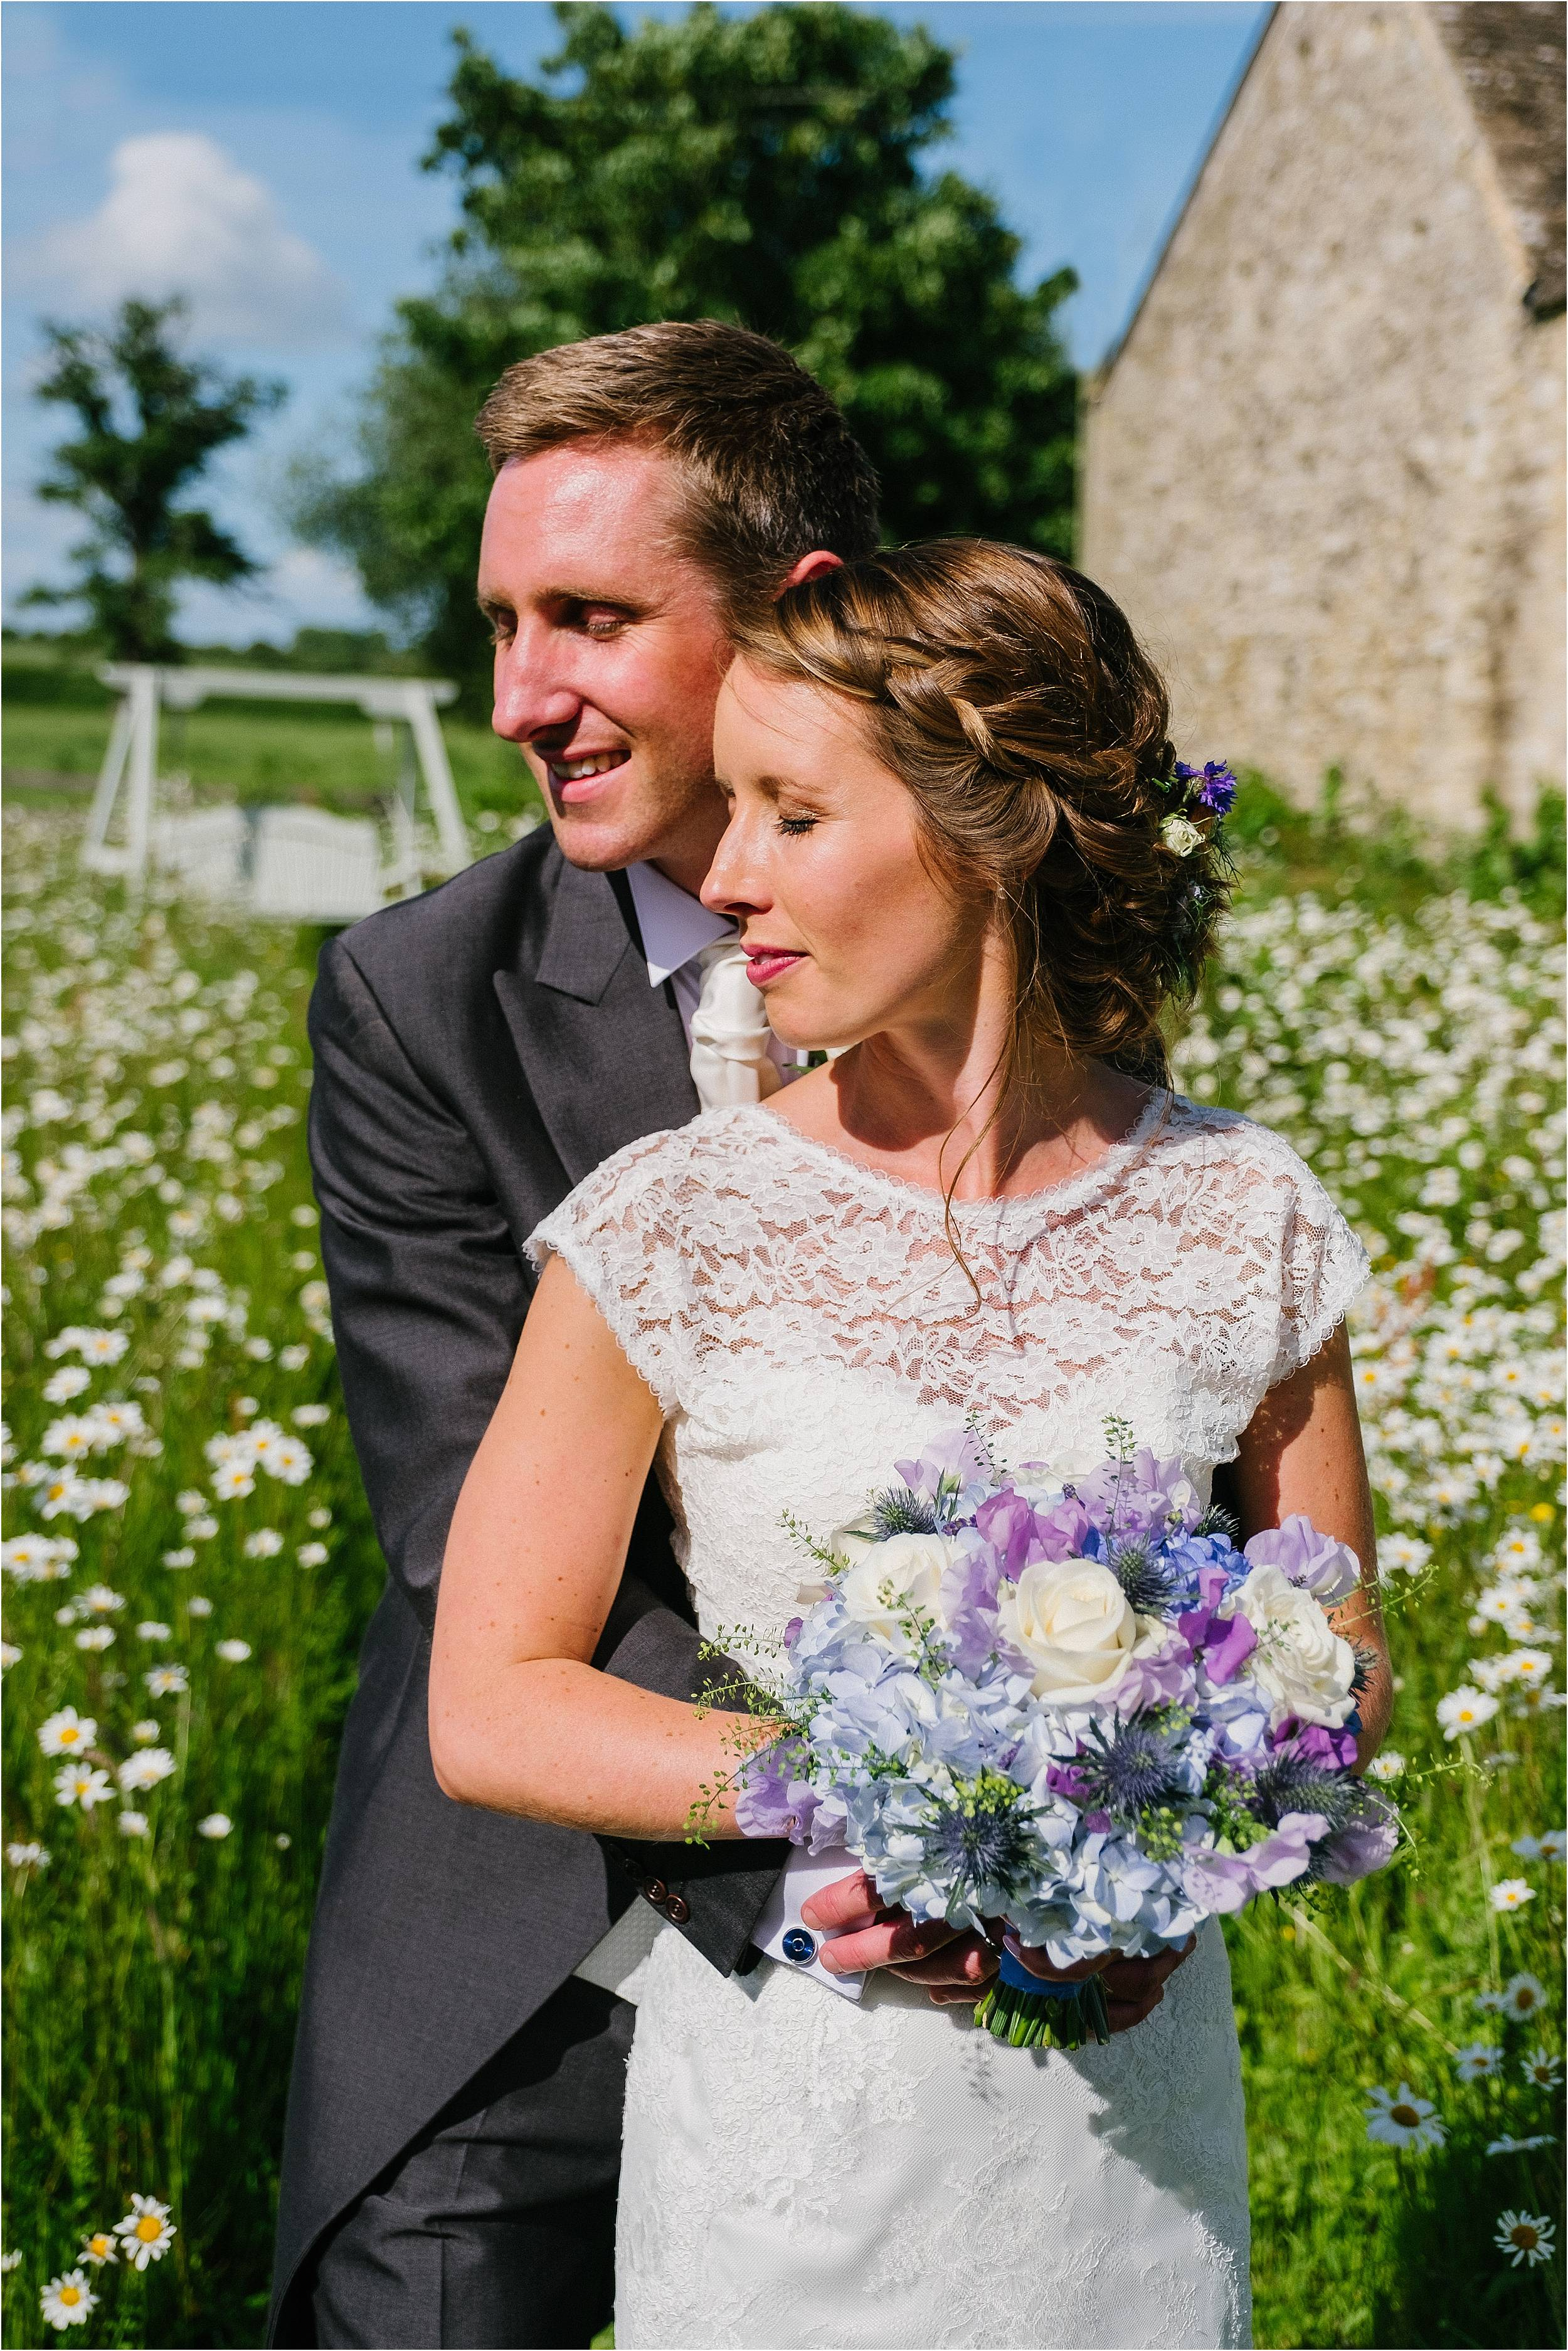 Caswell House Oxfordshire Wedding Photographer_0199.jpg